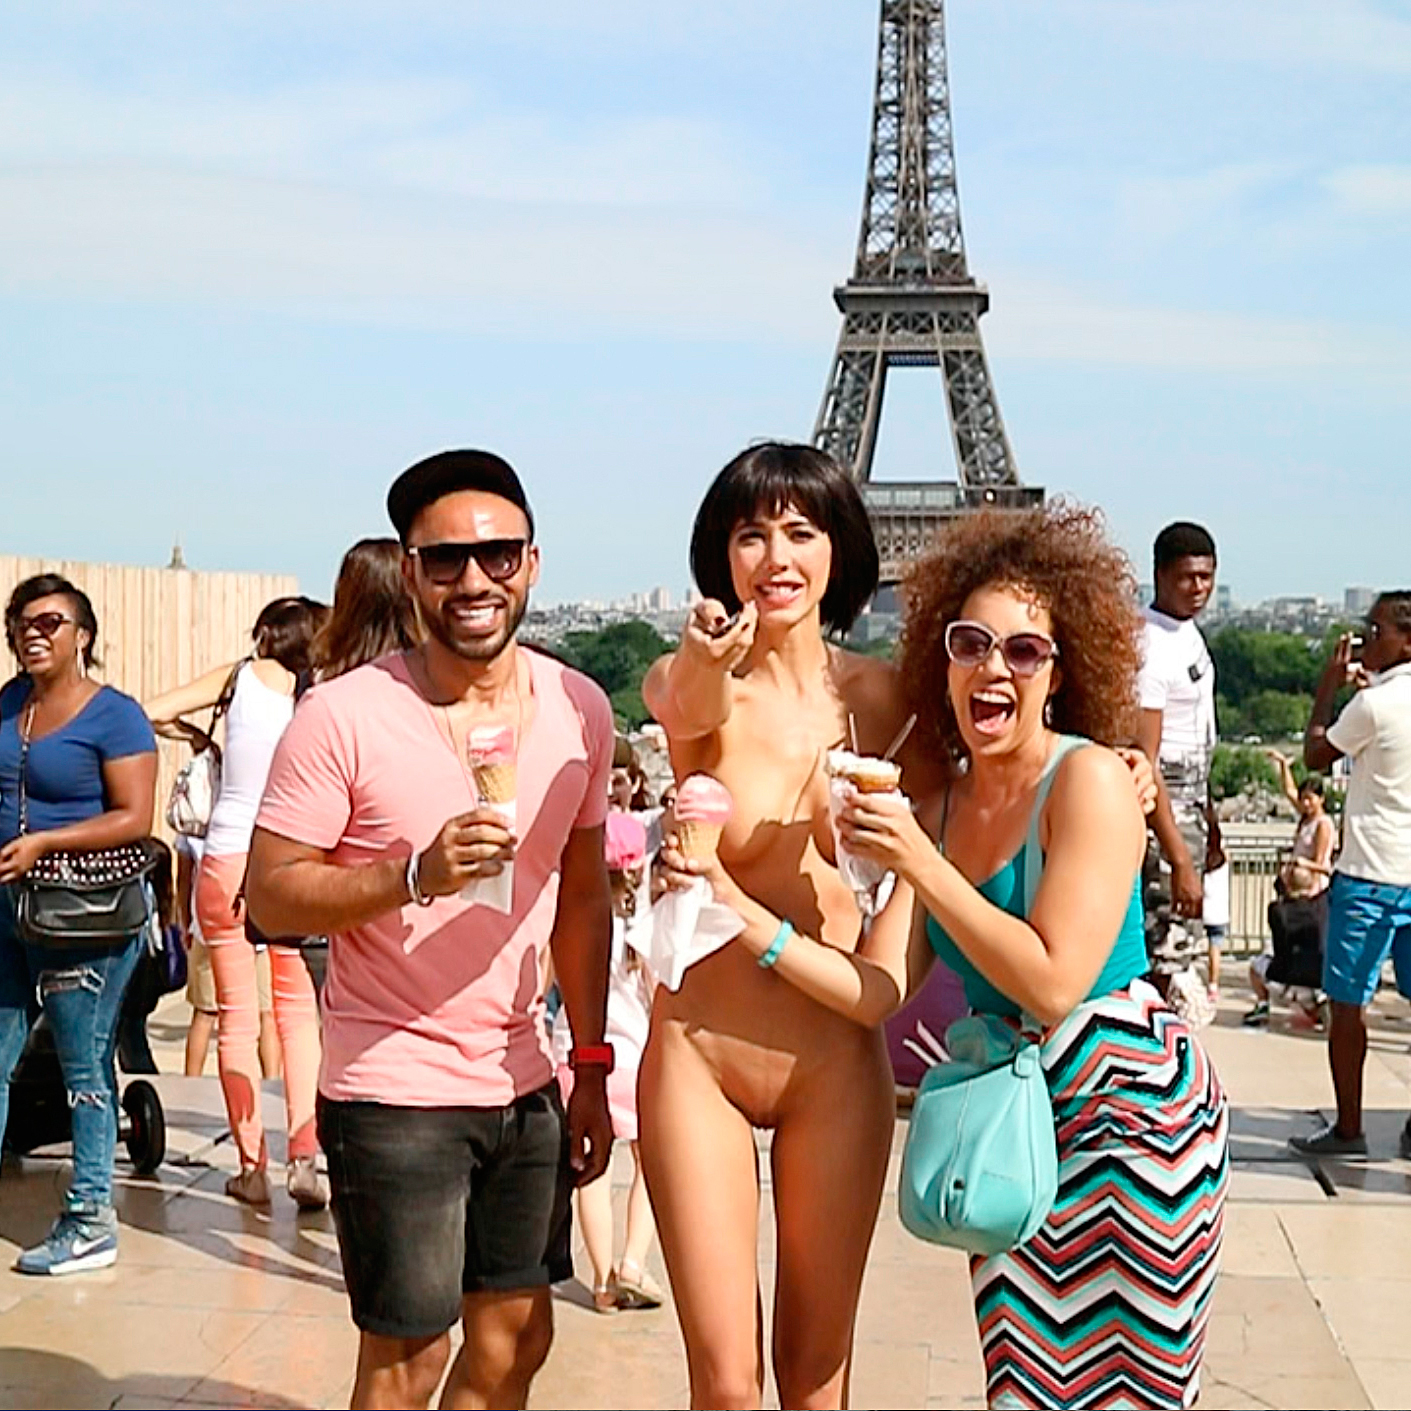 Naked Selfie Performance in Paris by Milo Moiré